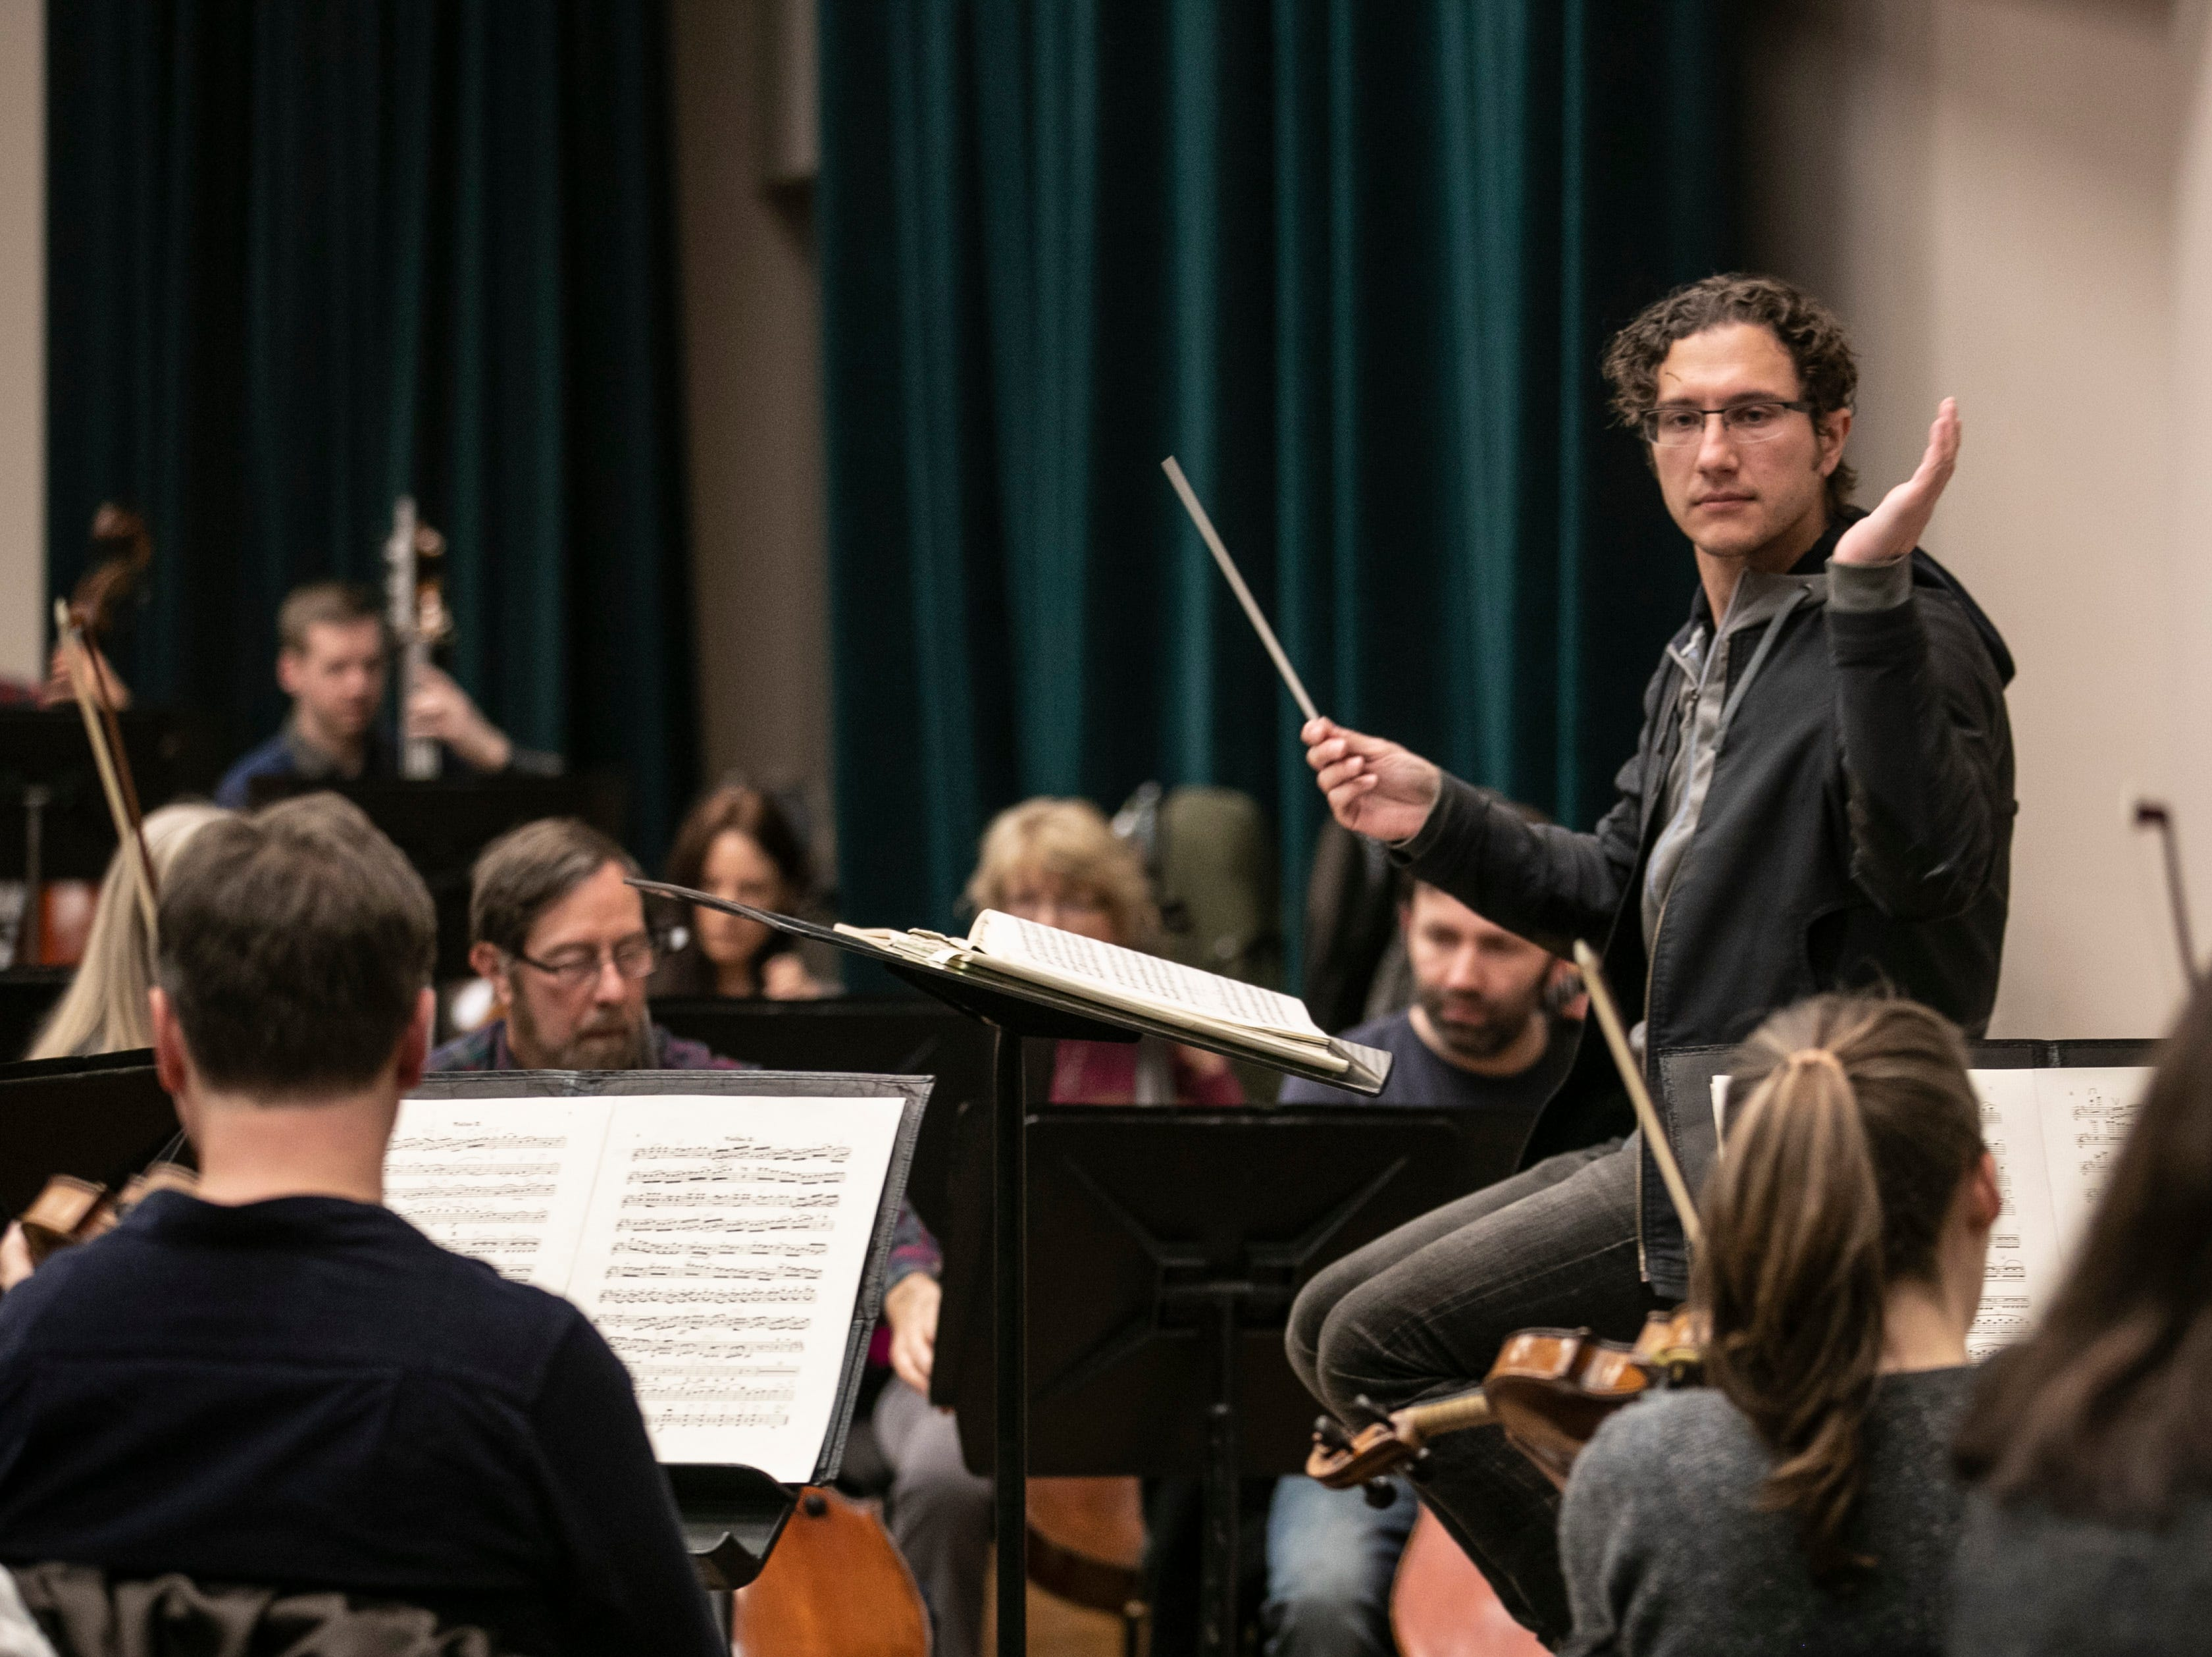 Conductor Teddy Abrams conducts the Louisville Orchestra during a recent practice for the upcoming show, Star Wars: A New Hope in Concert. The film will be shown at the Kentucky Center as the orchestra plays the score live, led by conductor Keitaro Harada.